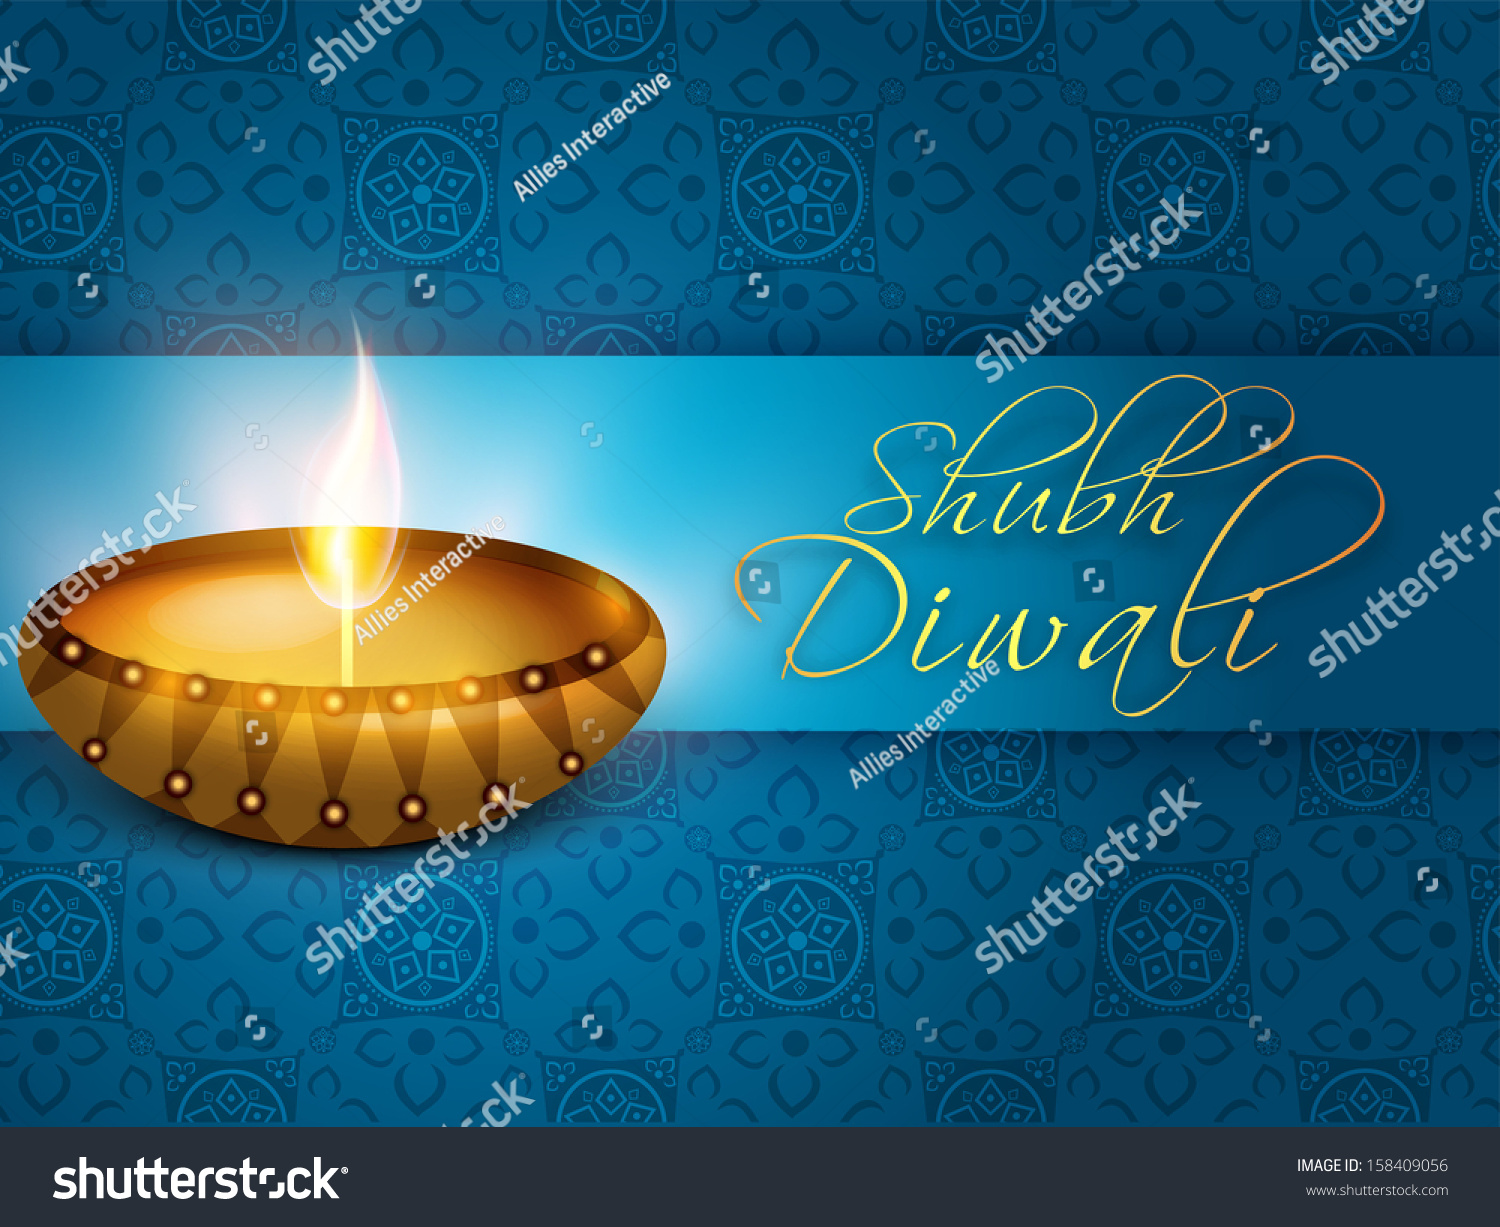 Indian Festival Lights Shubh Diwali Happy Stock Vector Royalty Free